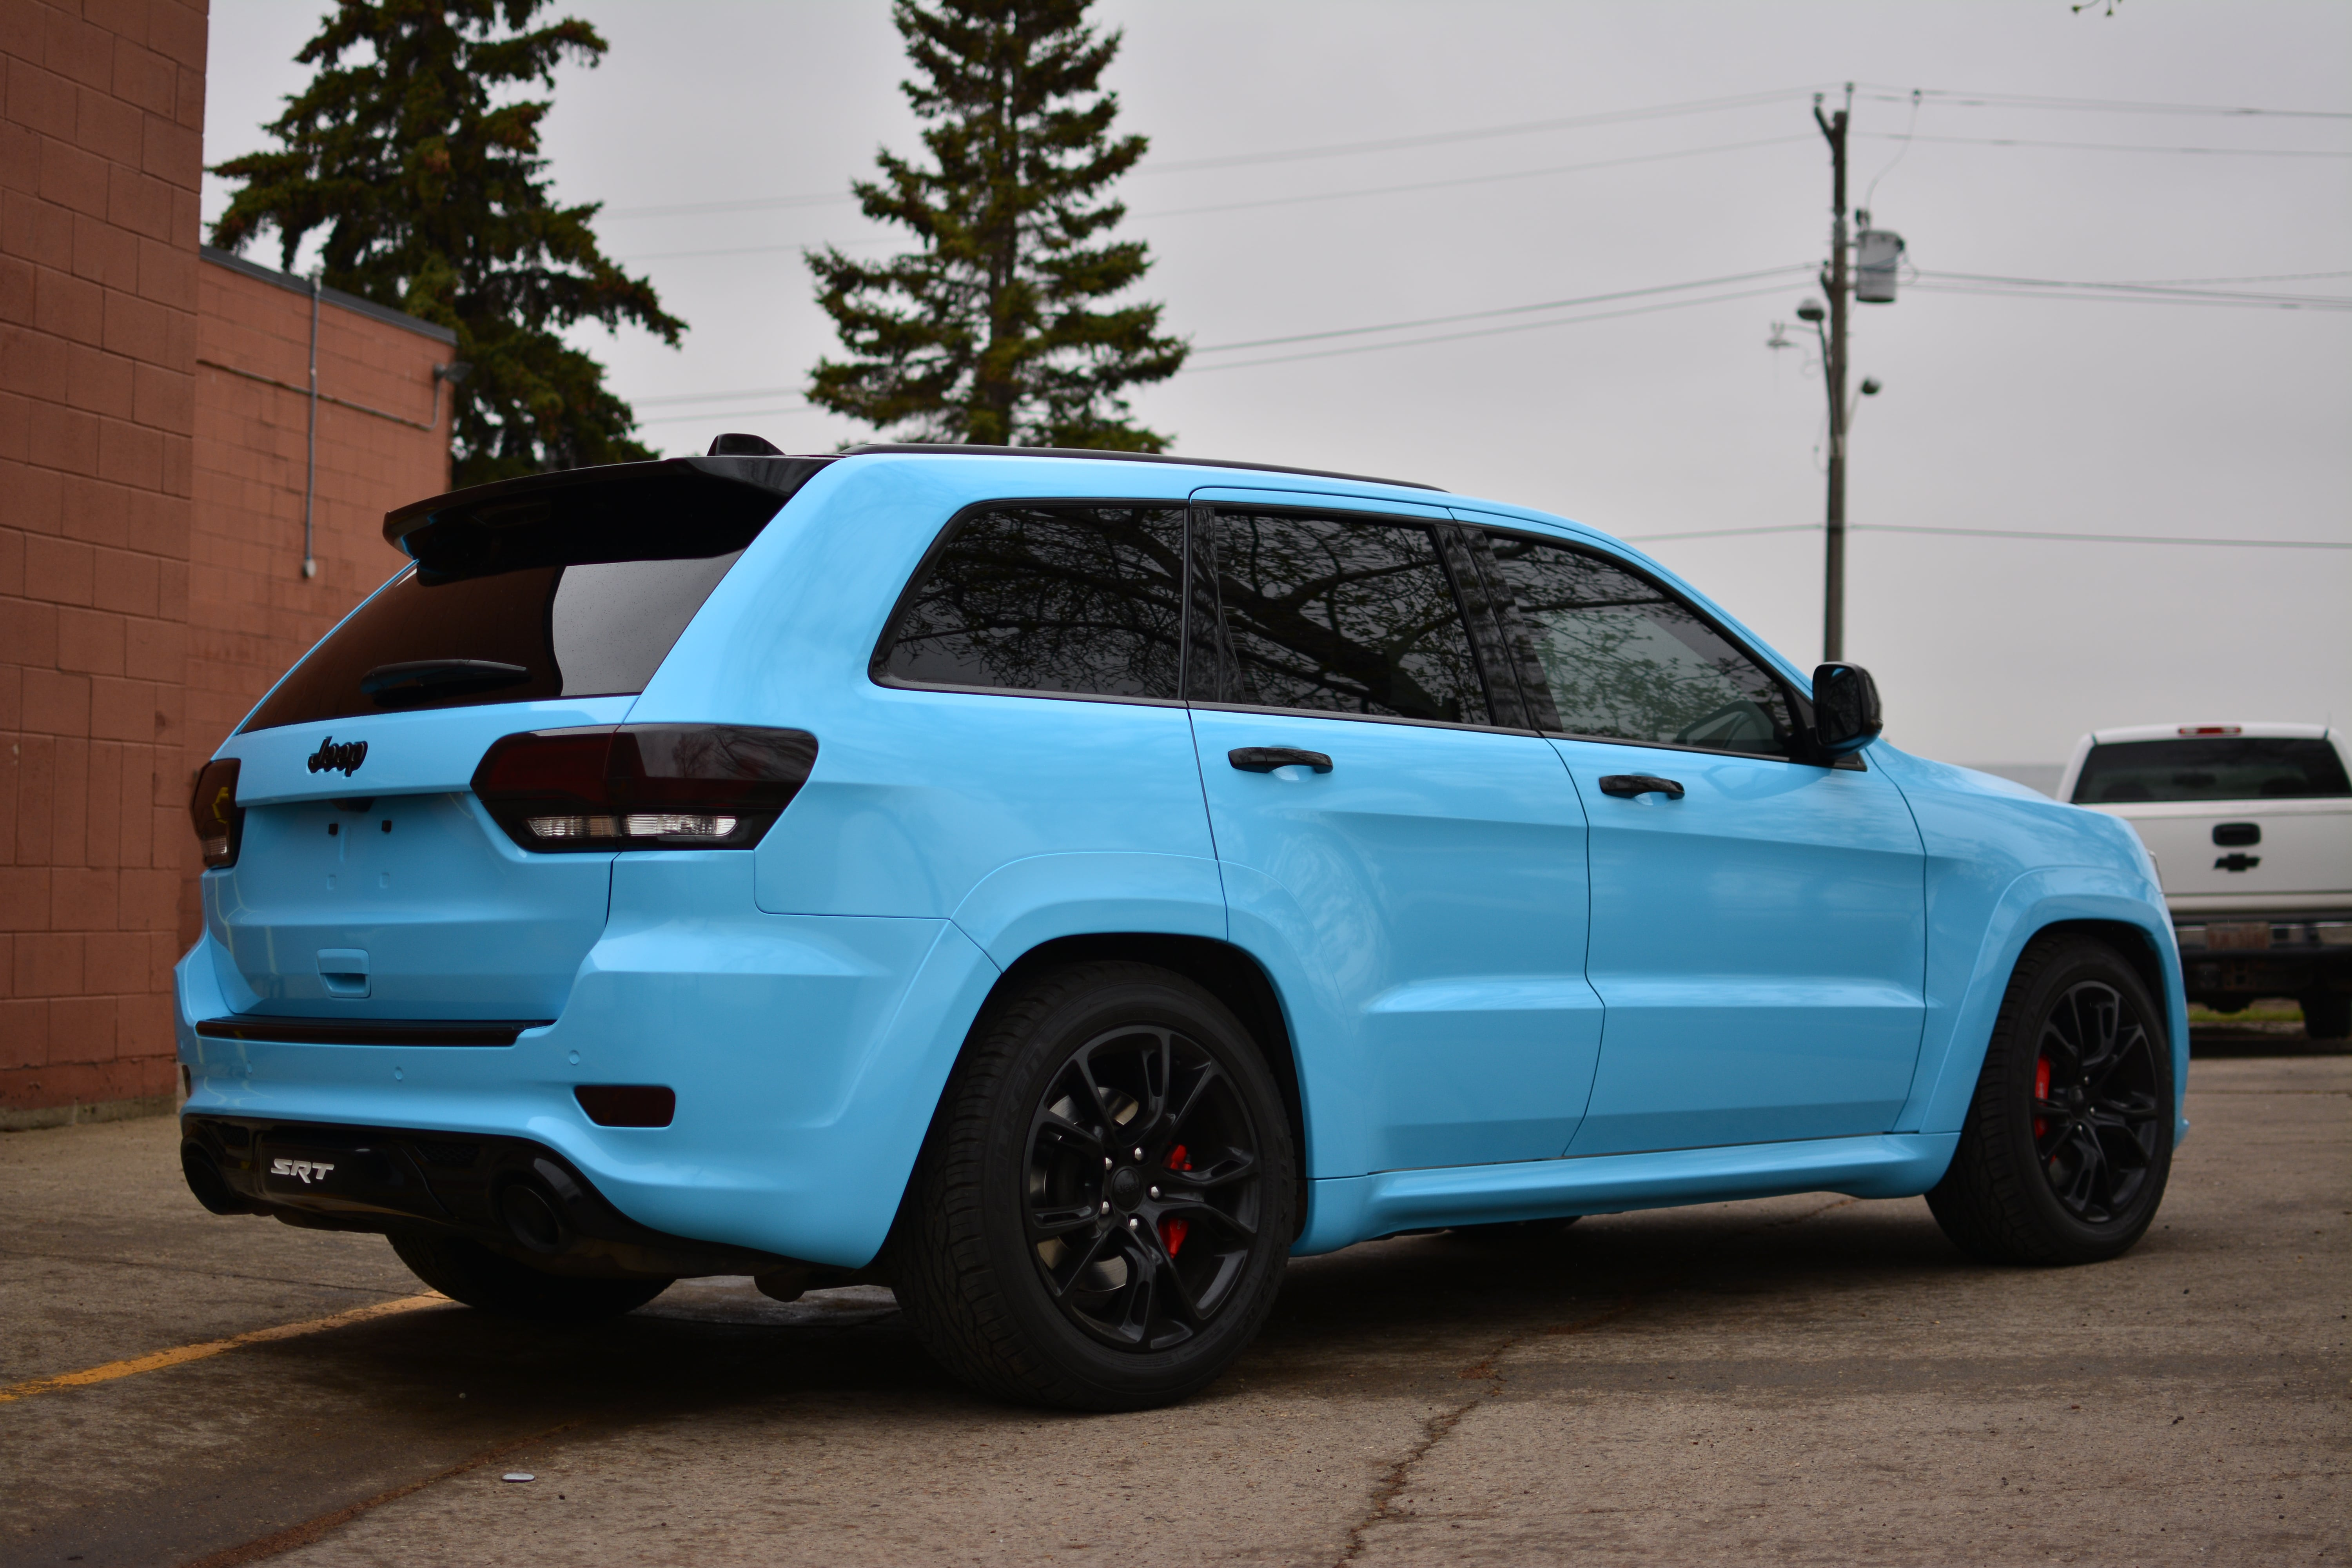 Jeep SRT8 3M Sky Blue, taken from behind.